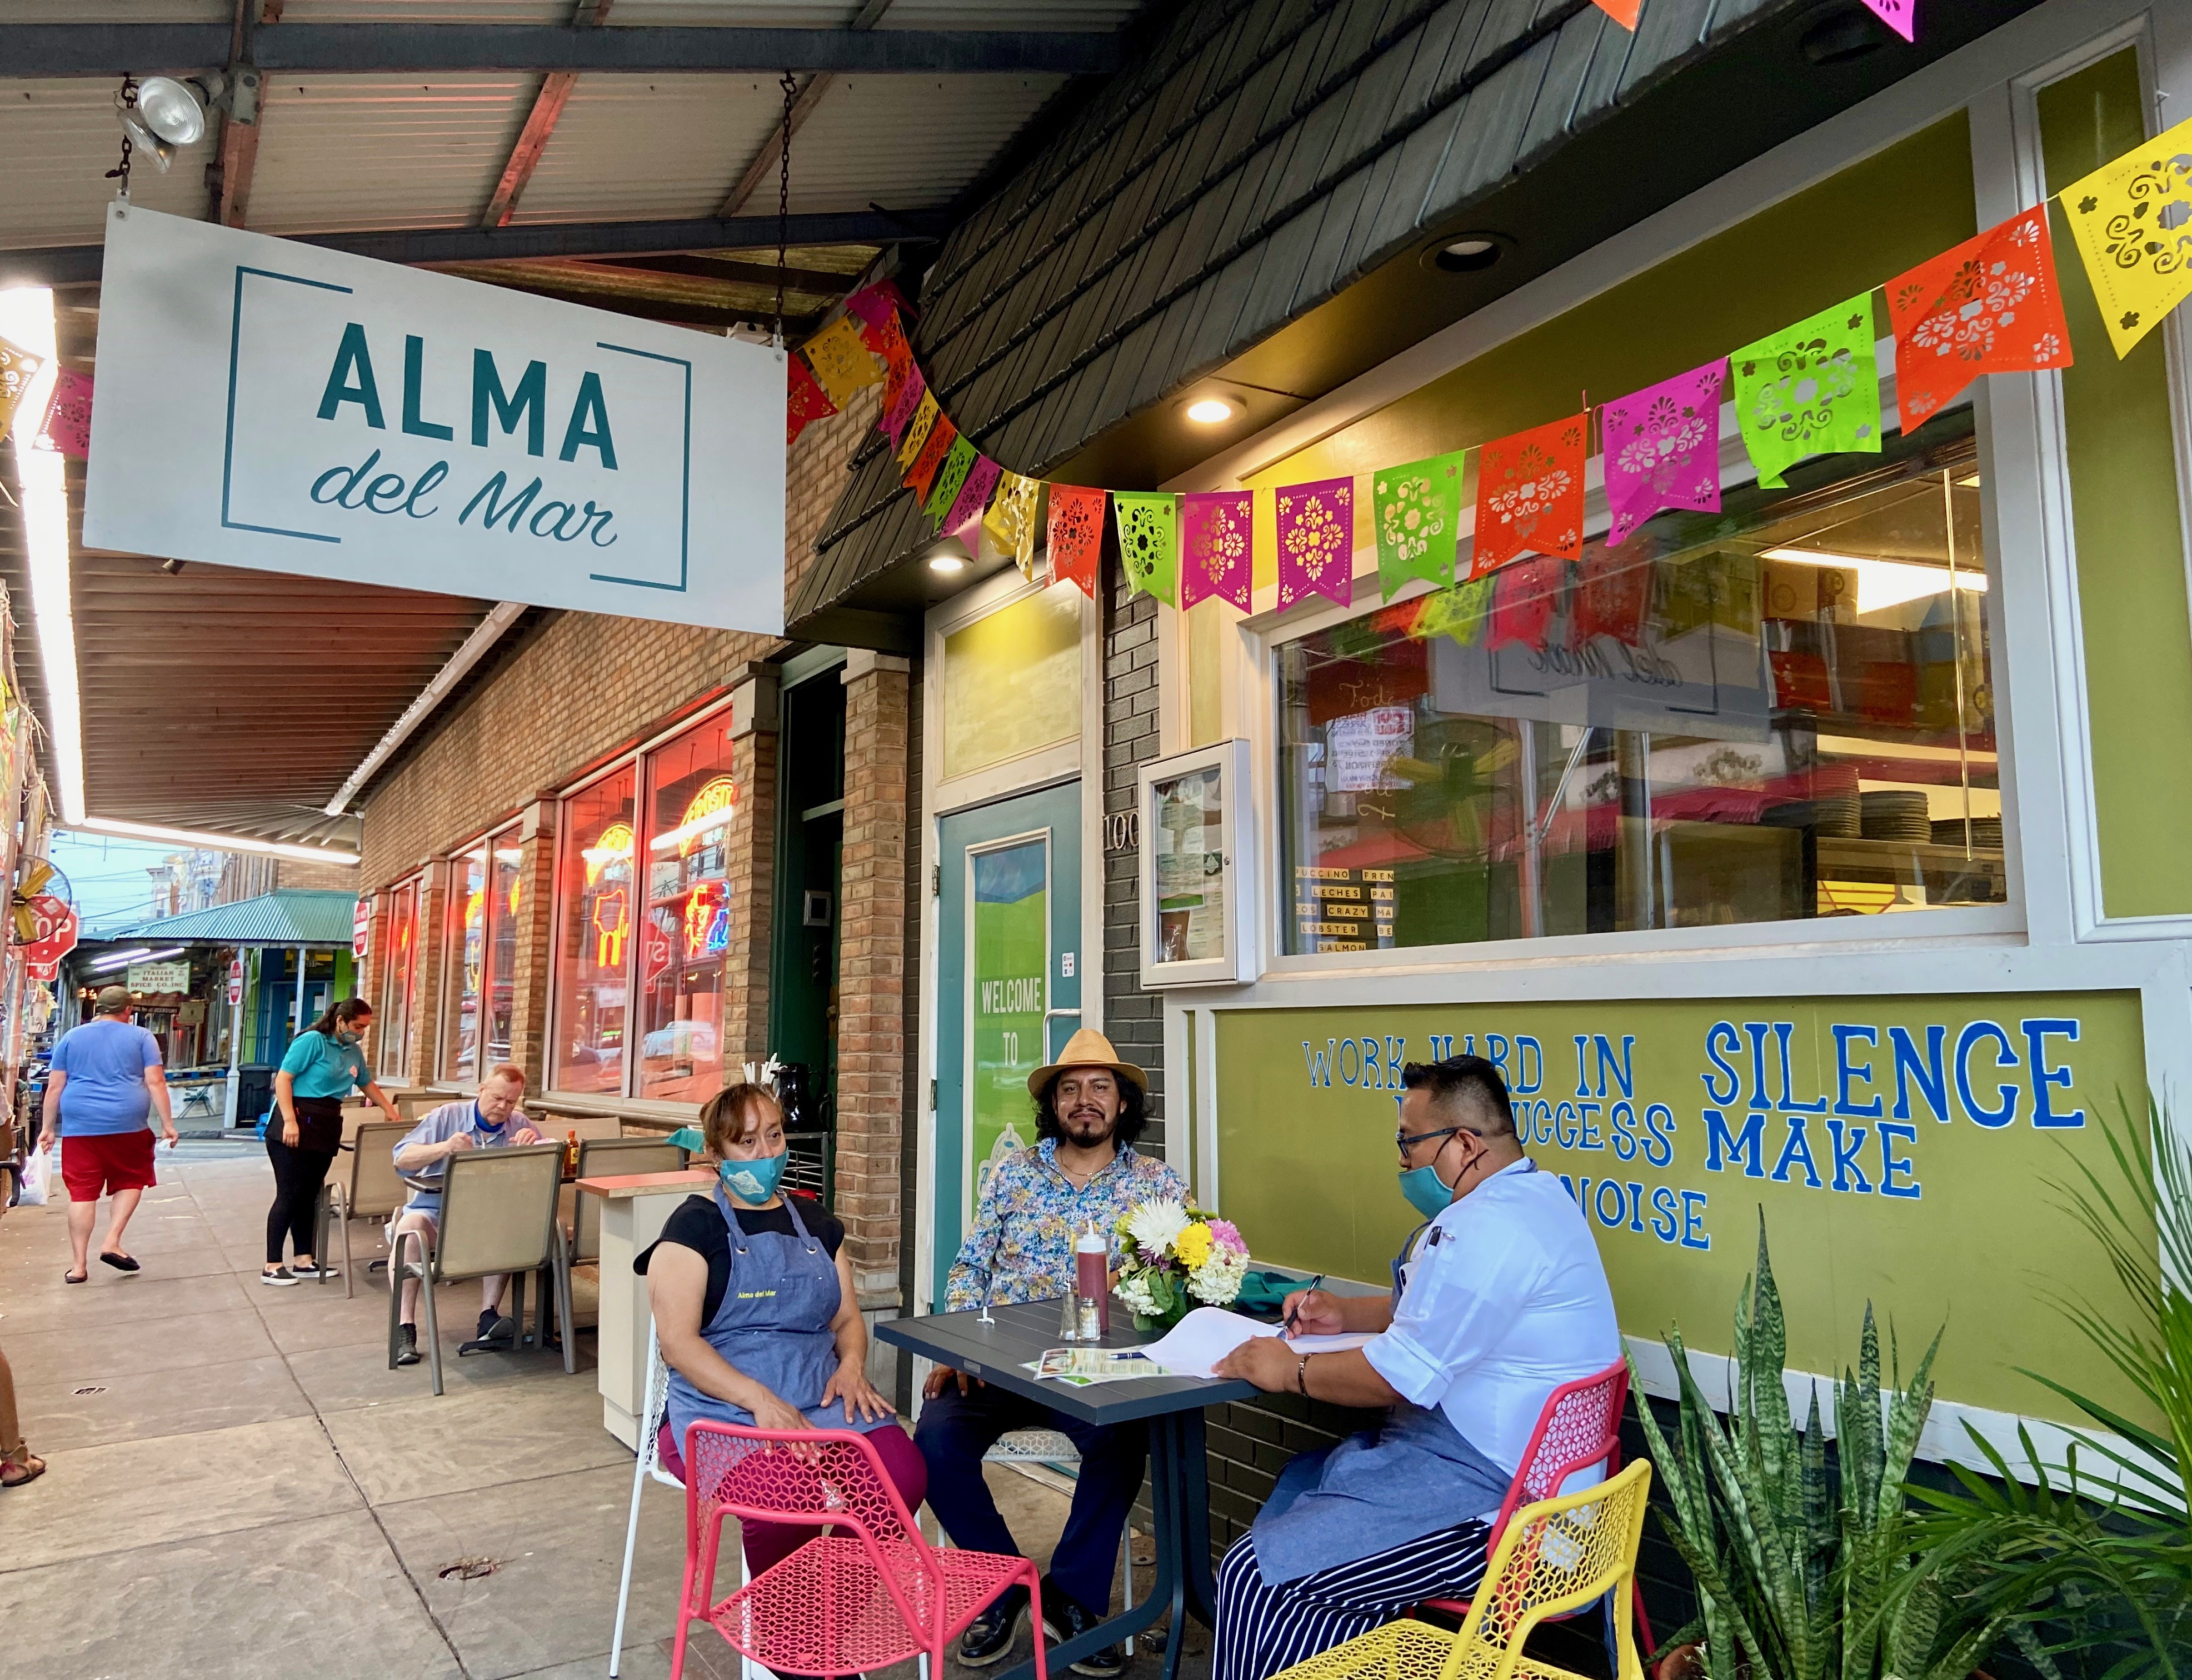 three people at table outside restaurant with sign that says alma del mar